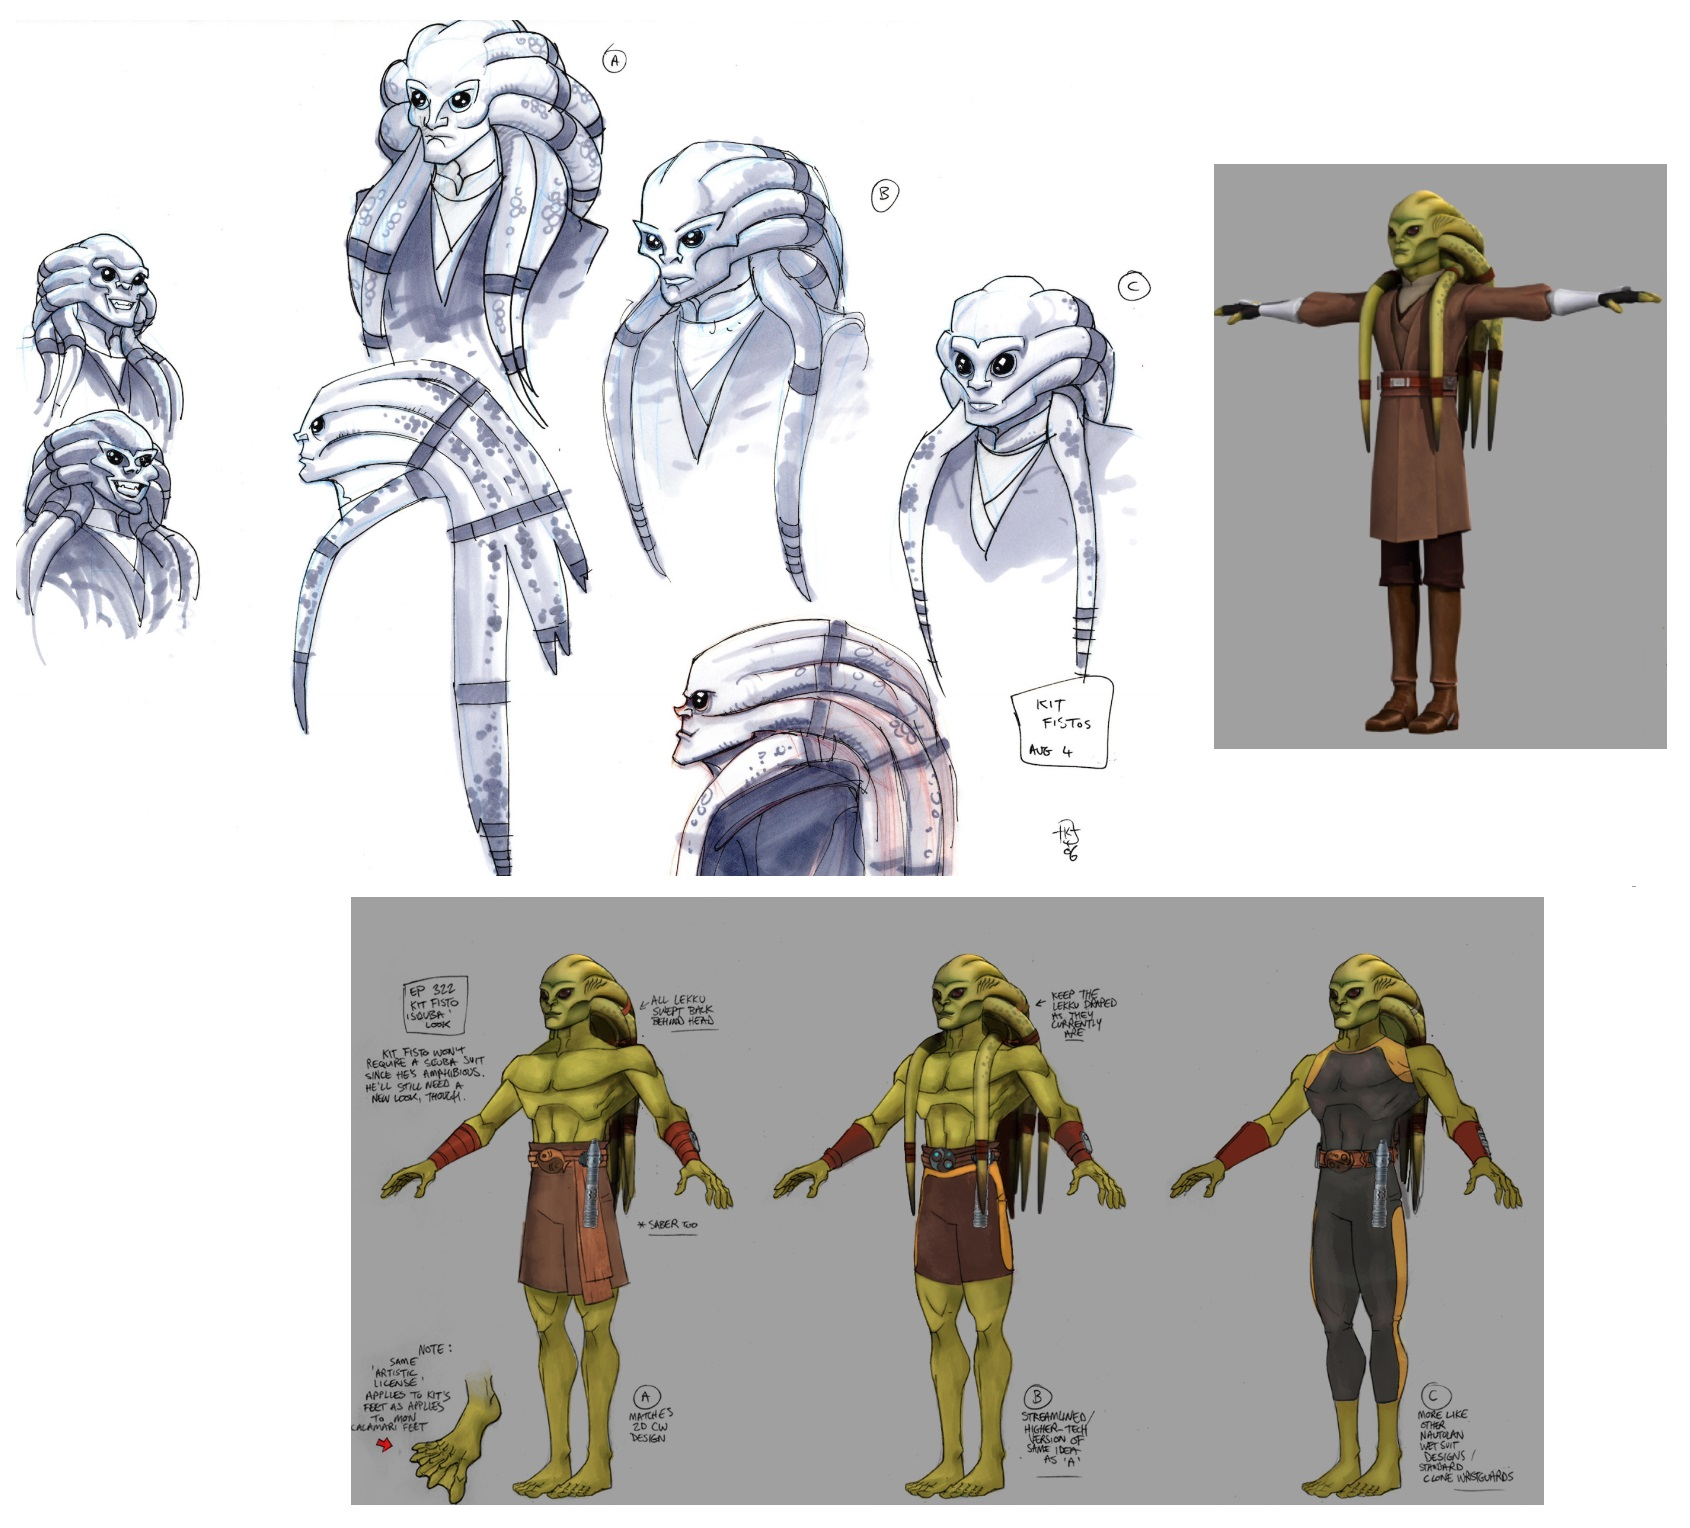 Kit Fisto Concept Sketches and Drawings for Star Wars: The Clone Wars